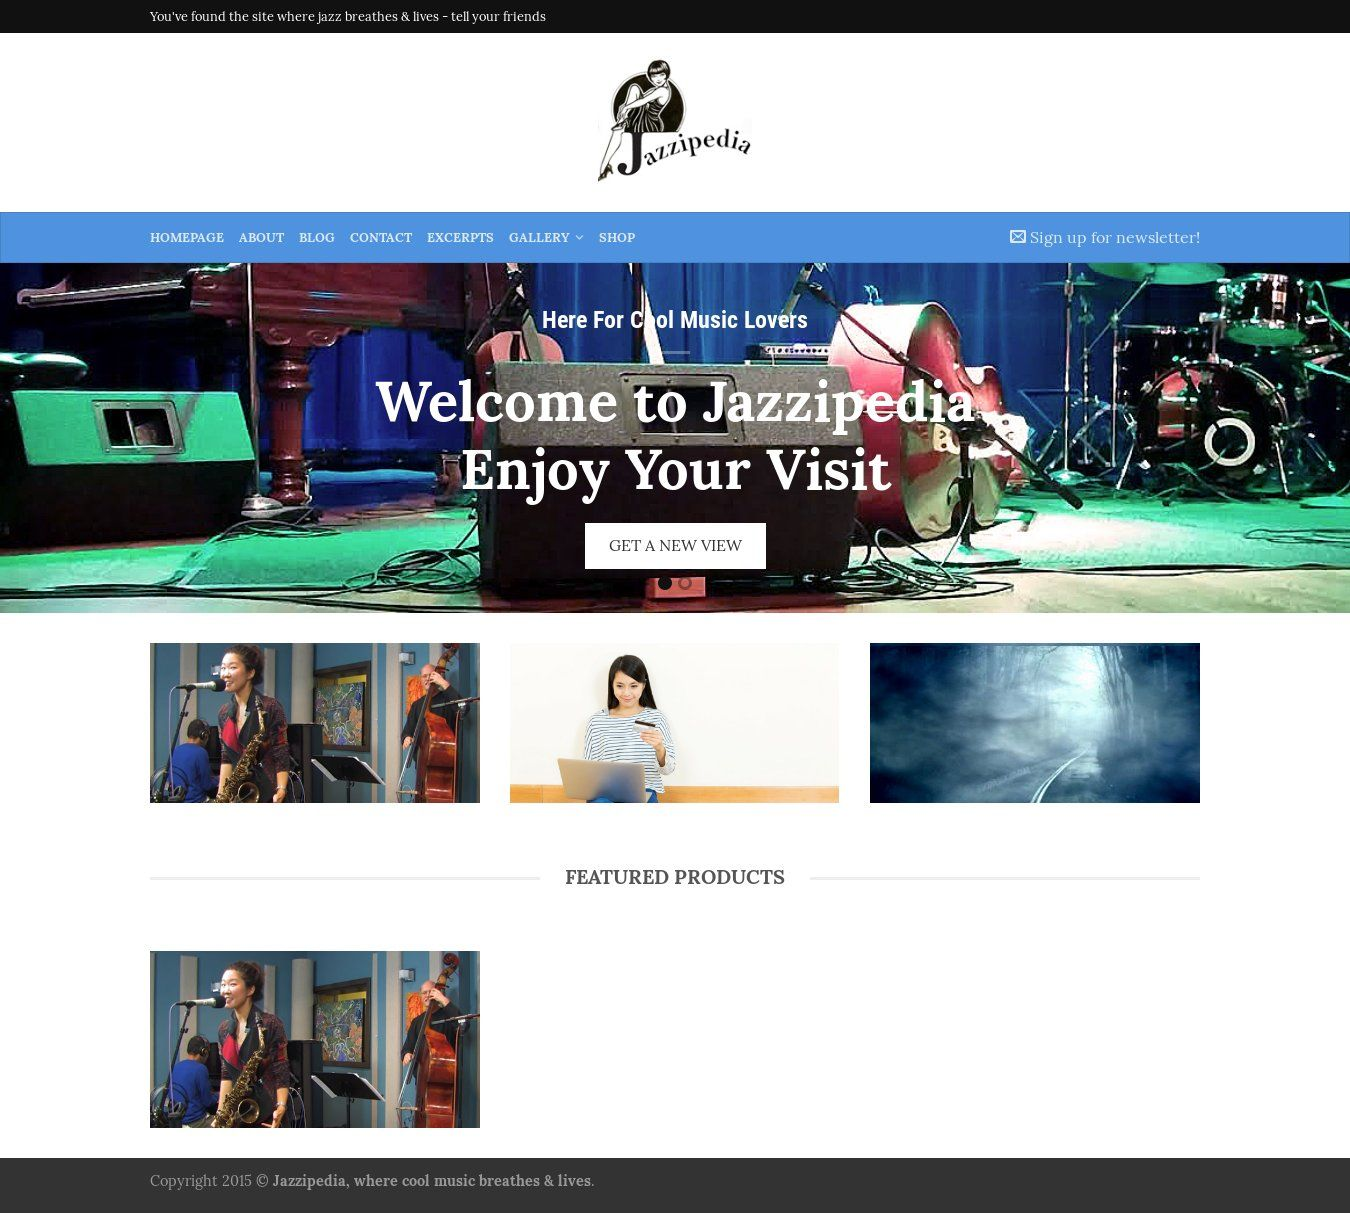 Flatsome wordpress template by UX-Themes - jazzipedia.com ...